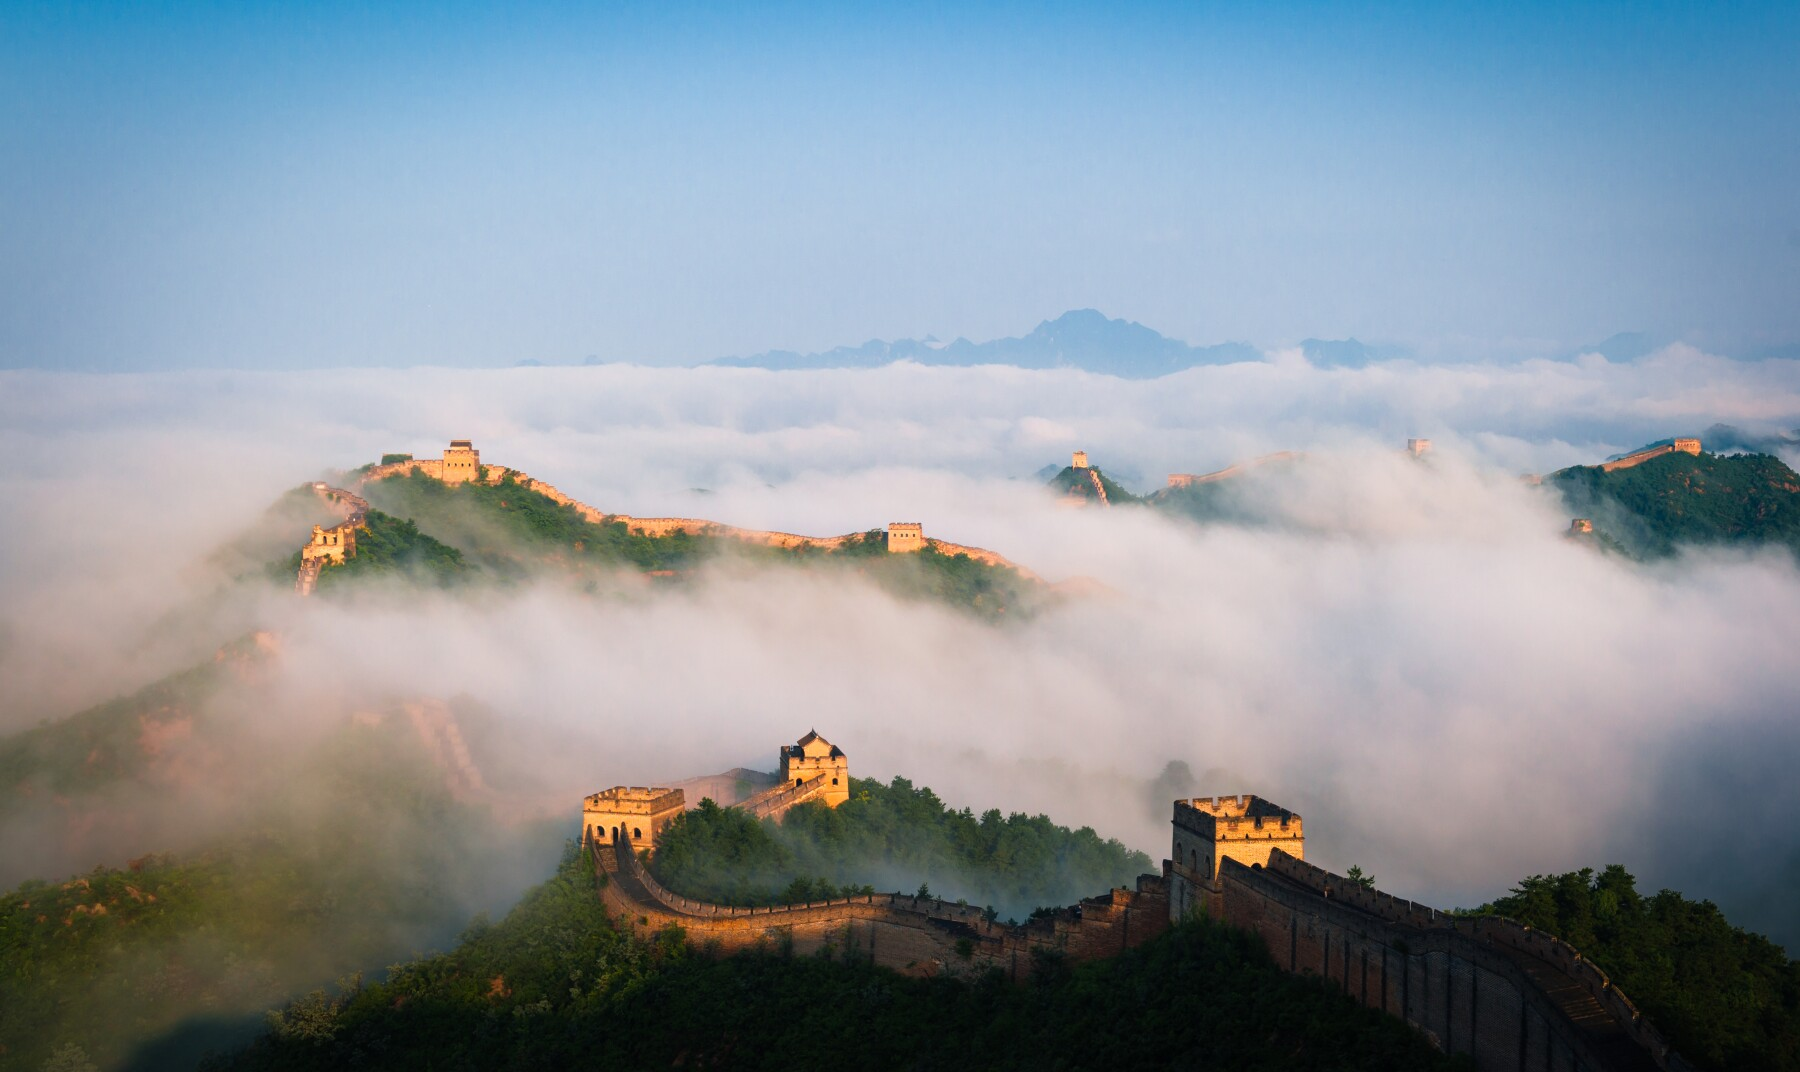 The Jingshanling Great Wall in the Seas of clouds